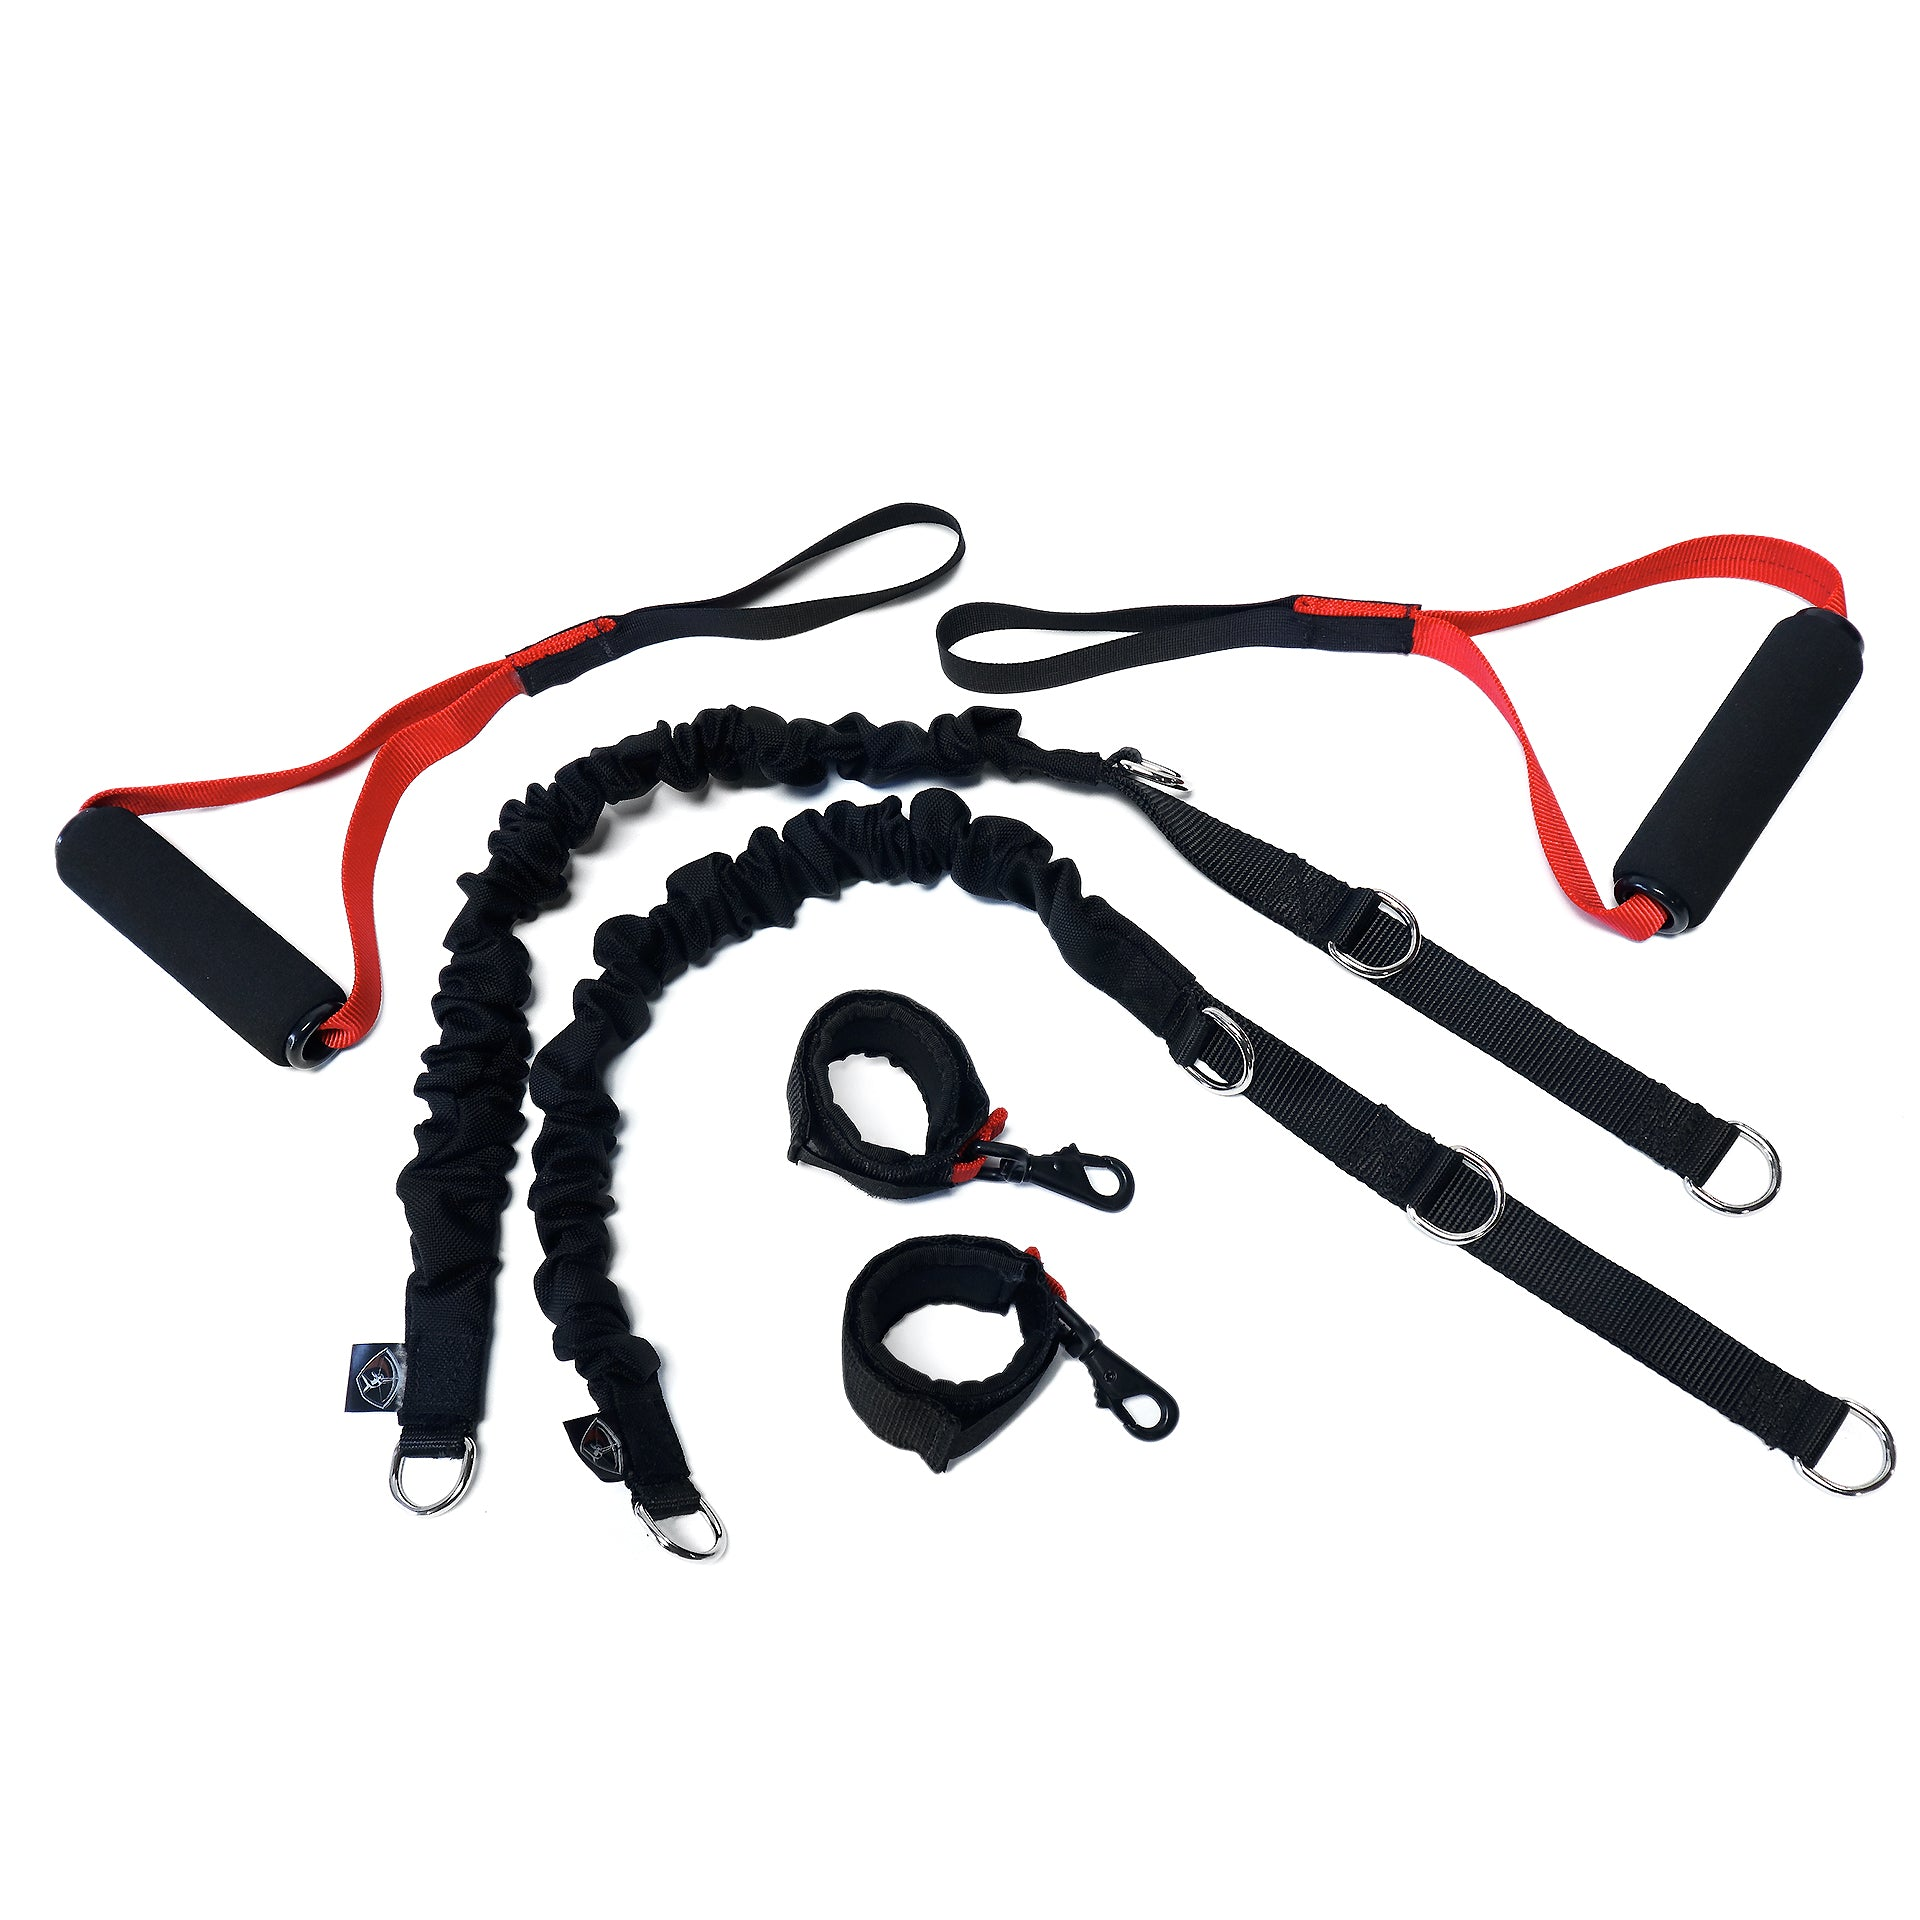 Micro Cables w/ Red Handle Bundle